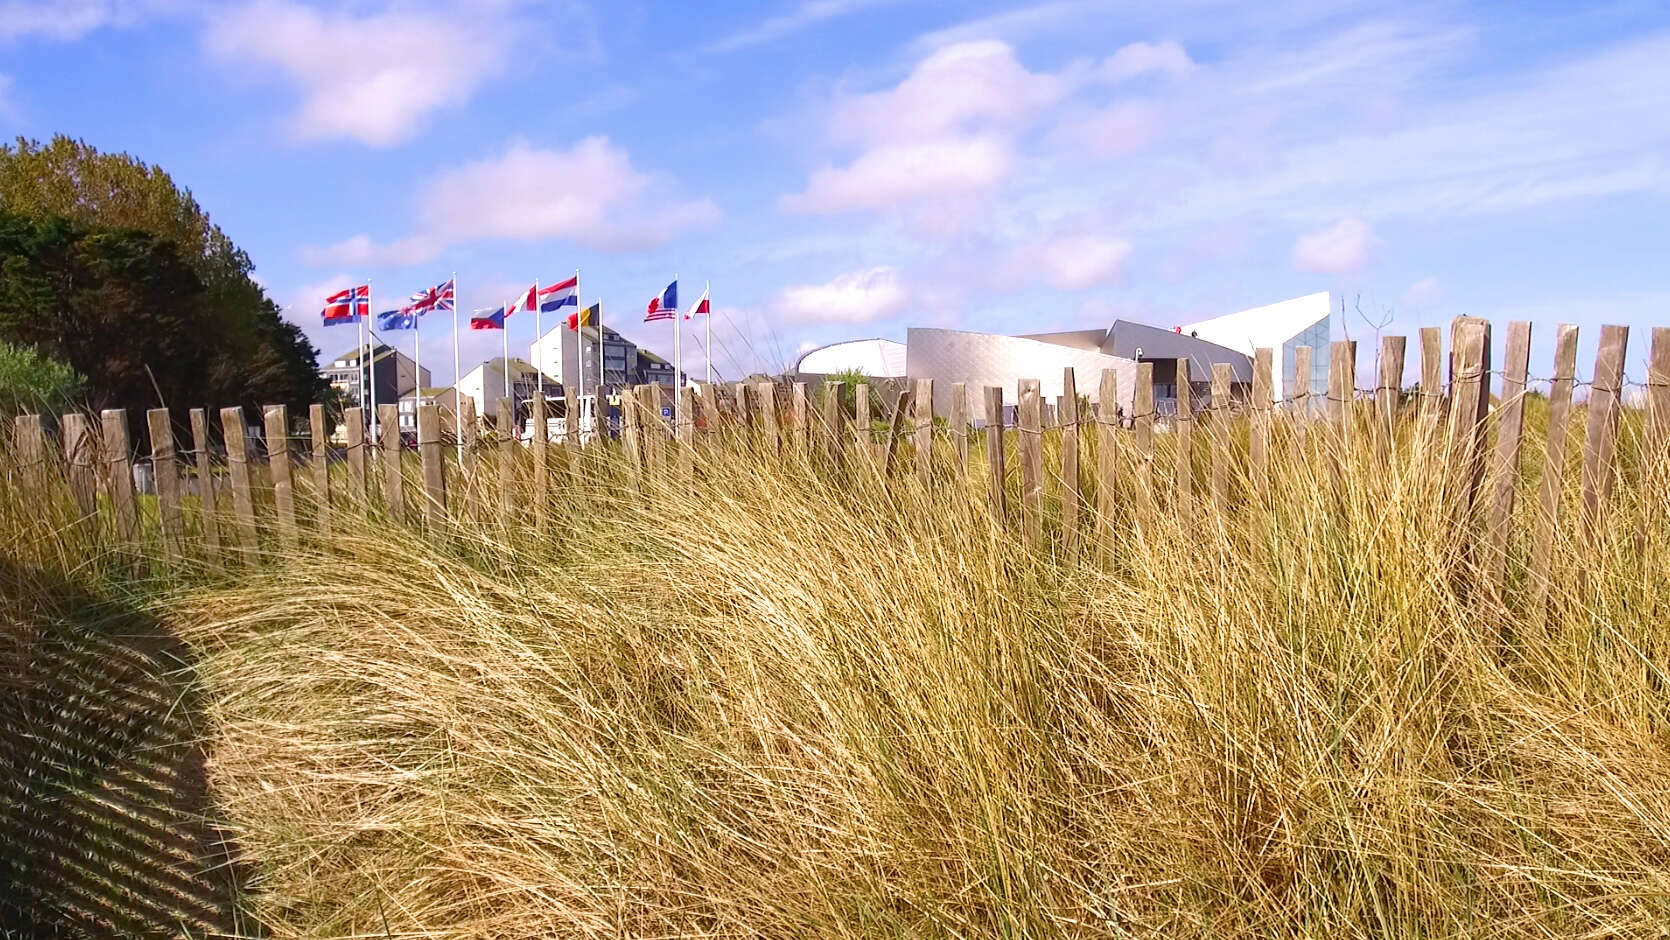 Save $1500 OR MORE PLUS Free Air! Paris to Normandy and Our DDay Landing Beach on an Avalon River Cruise